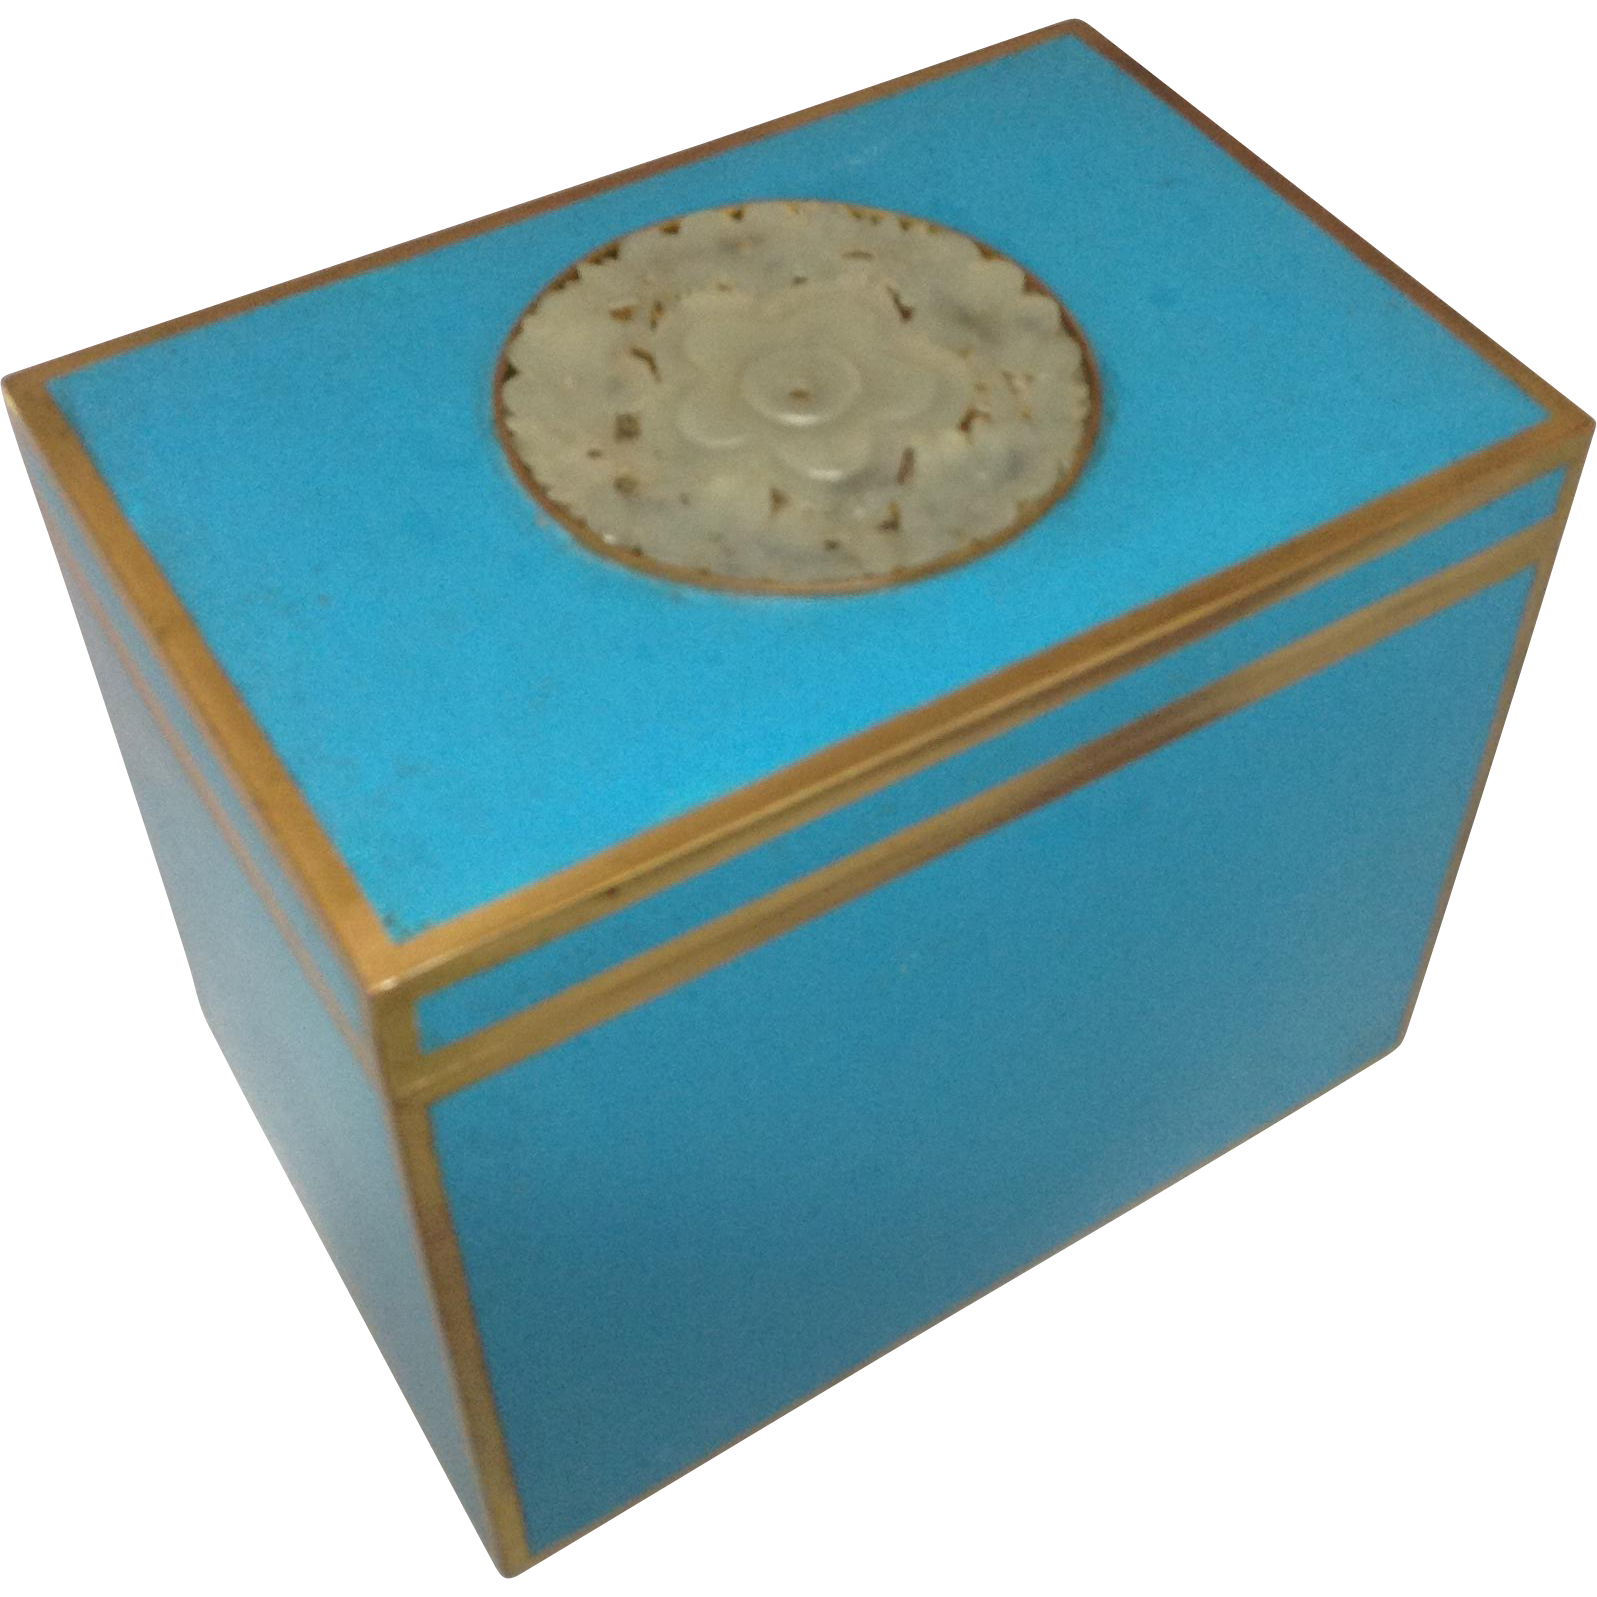 Chinese Robin's Egg Blue Enamel Box with Center Jade Medallion